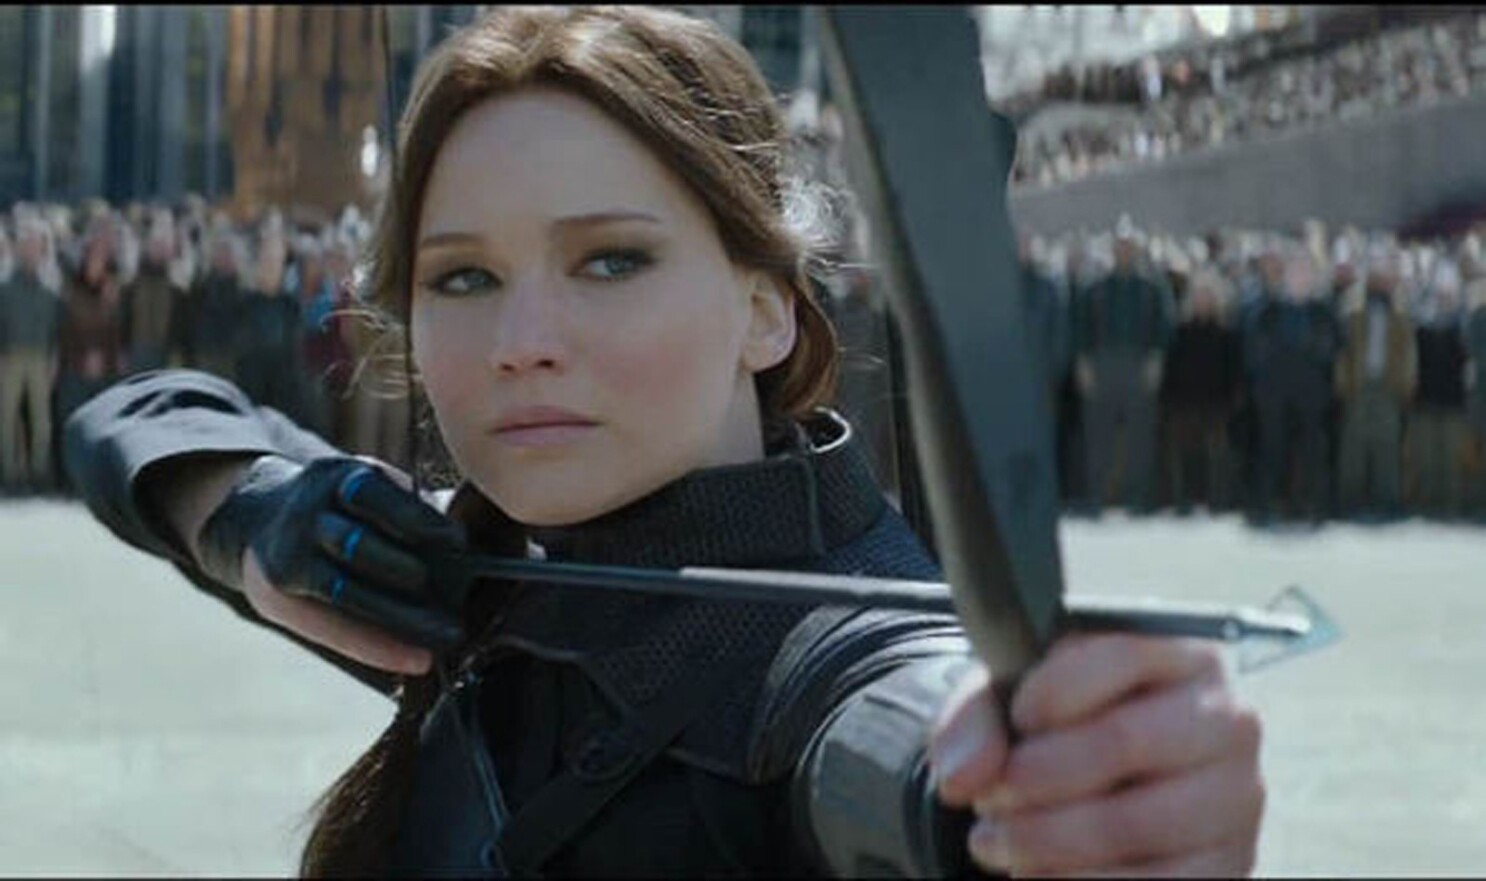 The Katniss factor: What the 'Hunger Games' movies say about